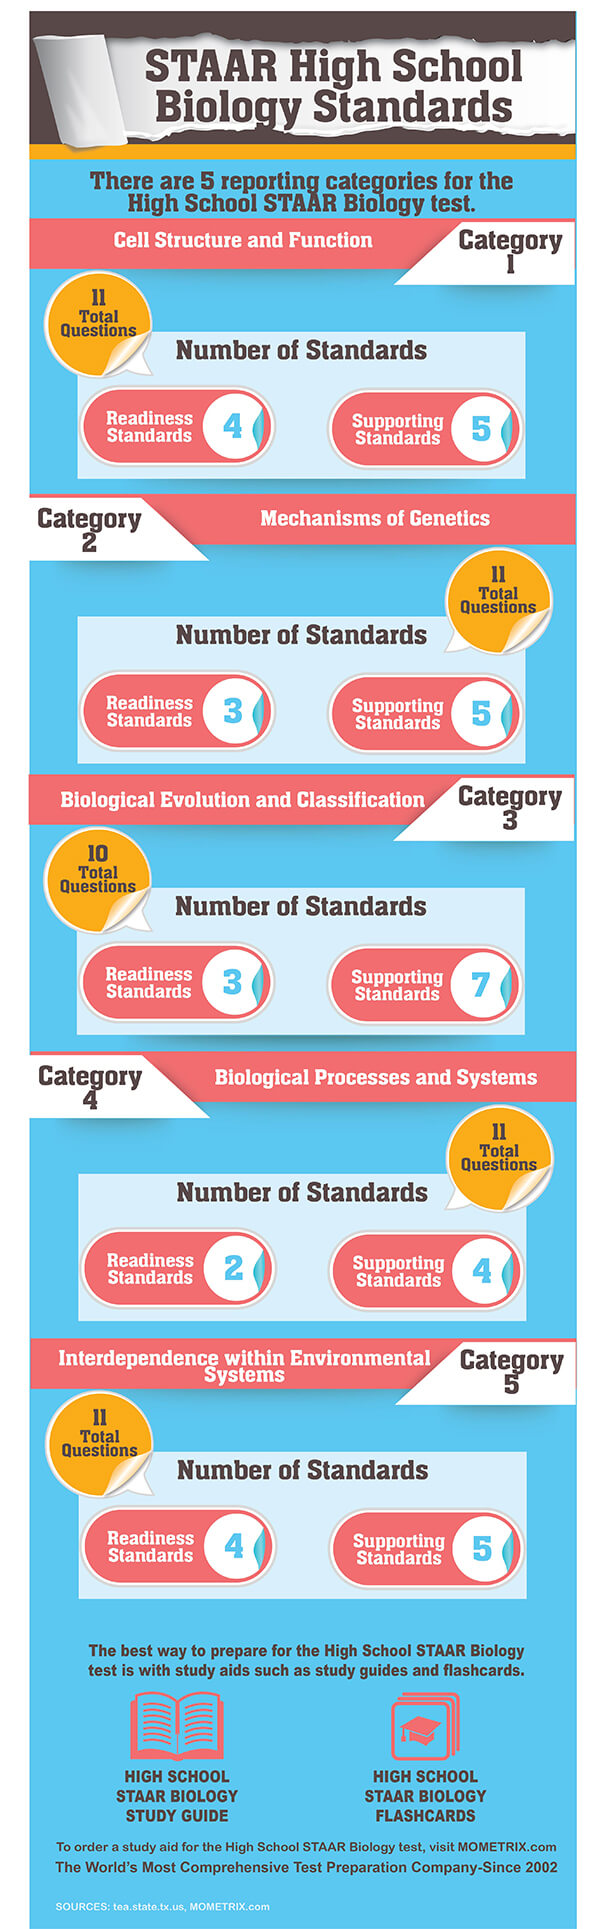 STAAR High School Biology Standards. There are 5 reporting categories for the High School STAAR Biology Test: Cell Structure and Function-11 questions; Mechanism of Genetics-11 questions; Biological Evolution and Classification- 10 questions; Biological Processes and Systems- 11 questions; Interdependence within Environmental Systems-11 questions.